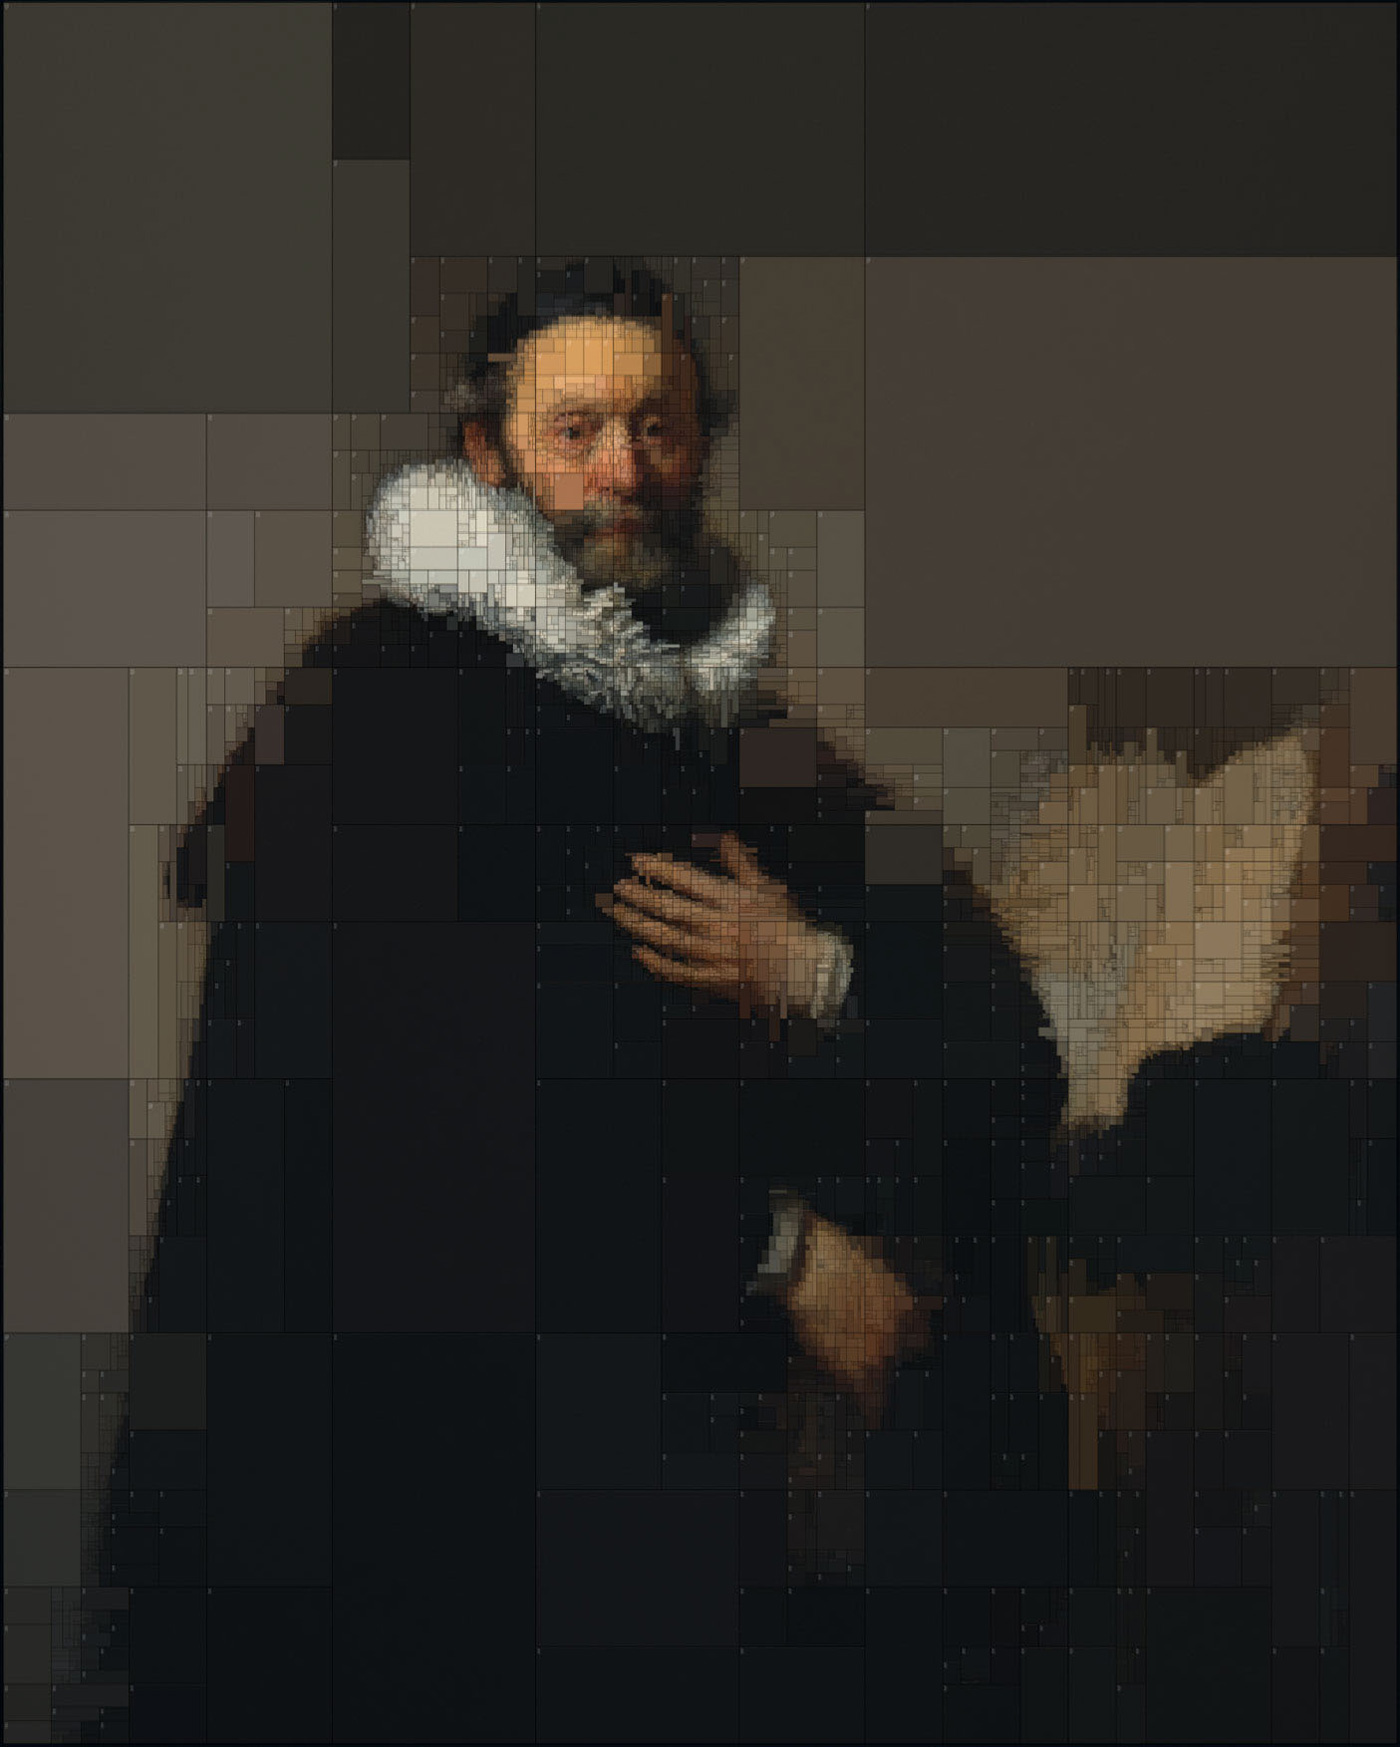 Digital Interpretations of Classical Paintings Using Algorithms (8 pics)